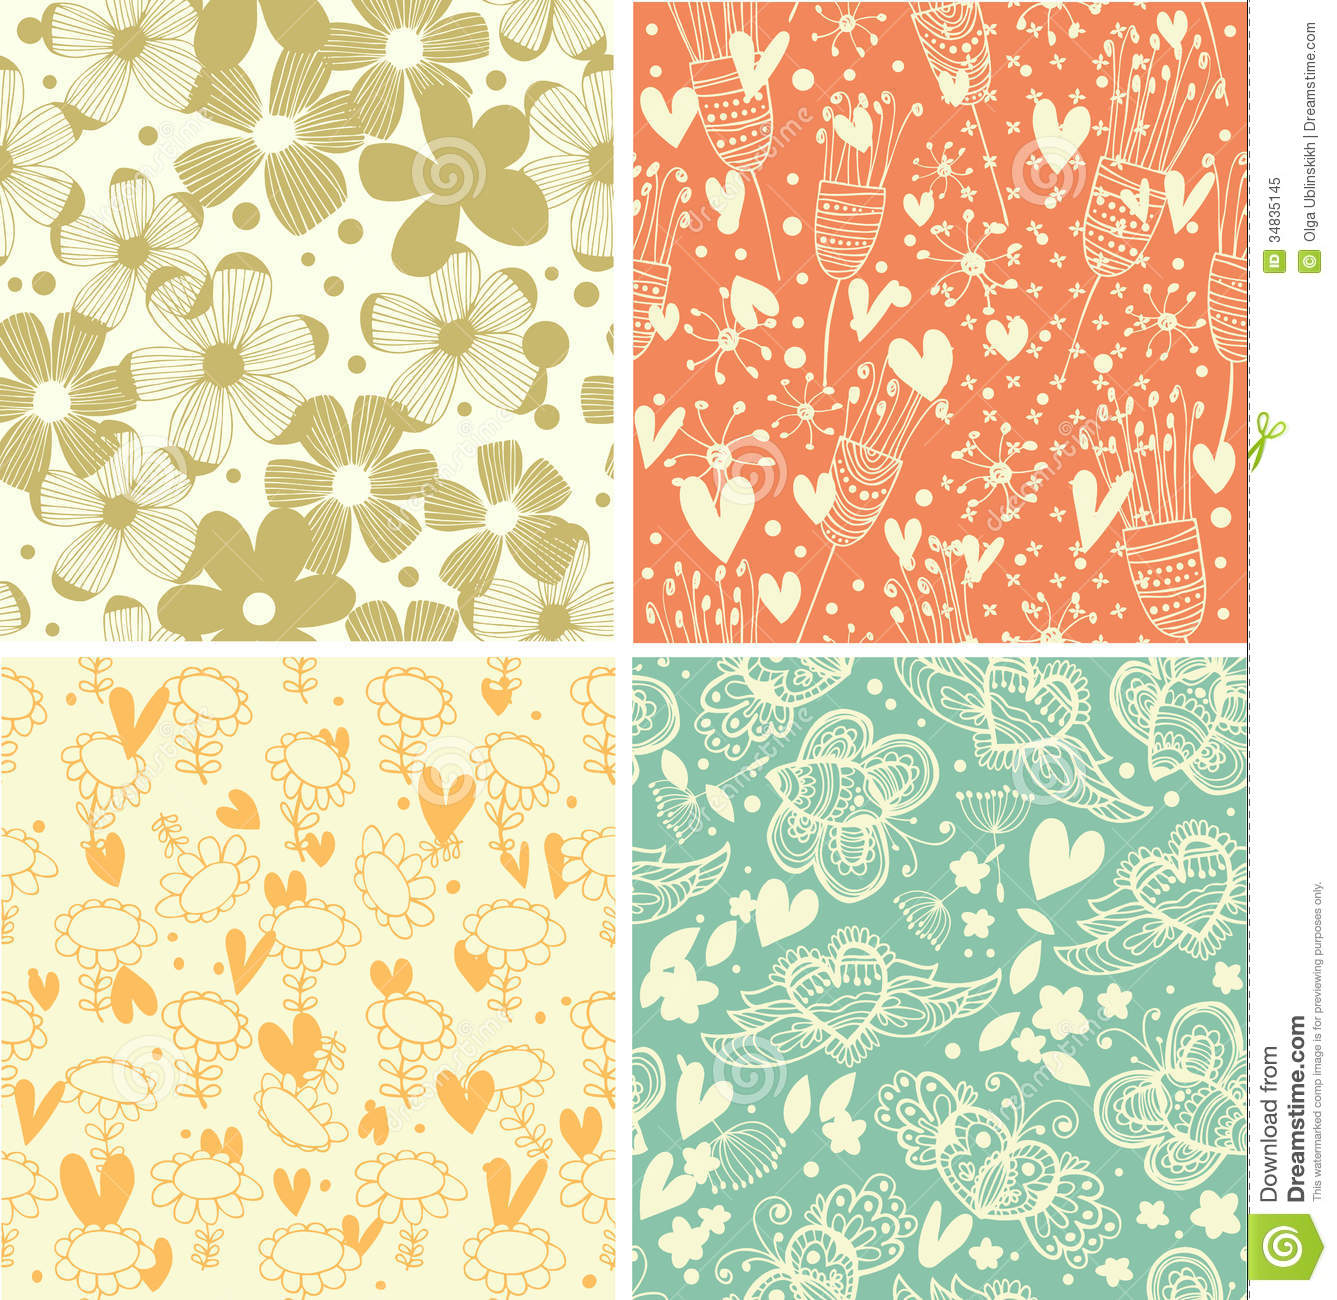 Download Cute Collection Of Floral Patterns  Set Of Beautiful Country Backgrounds Stock Illustration - Illustration of baby, flower: 34835145